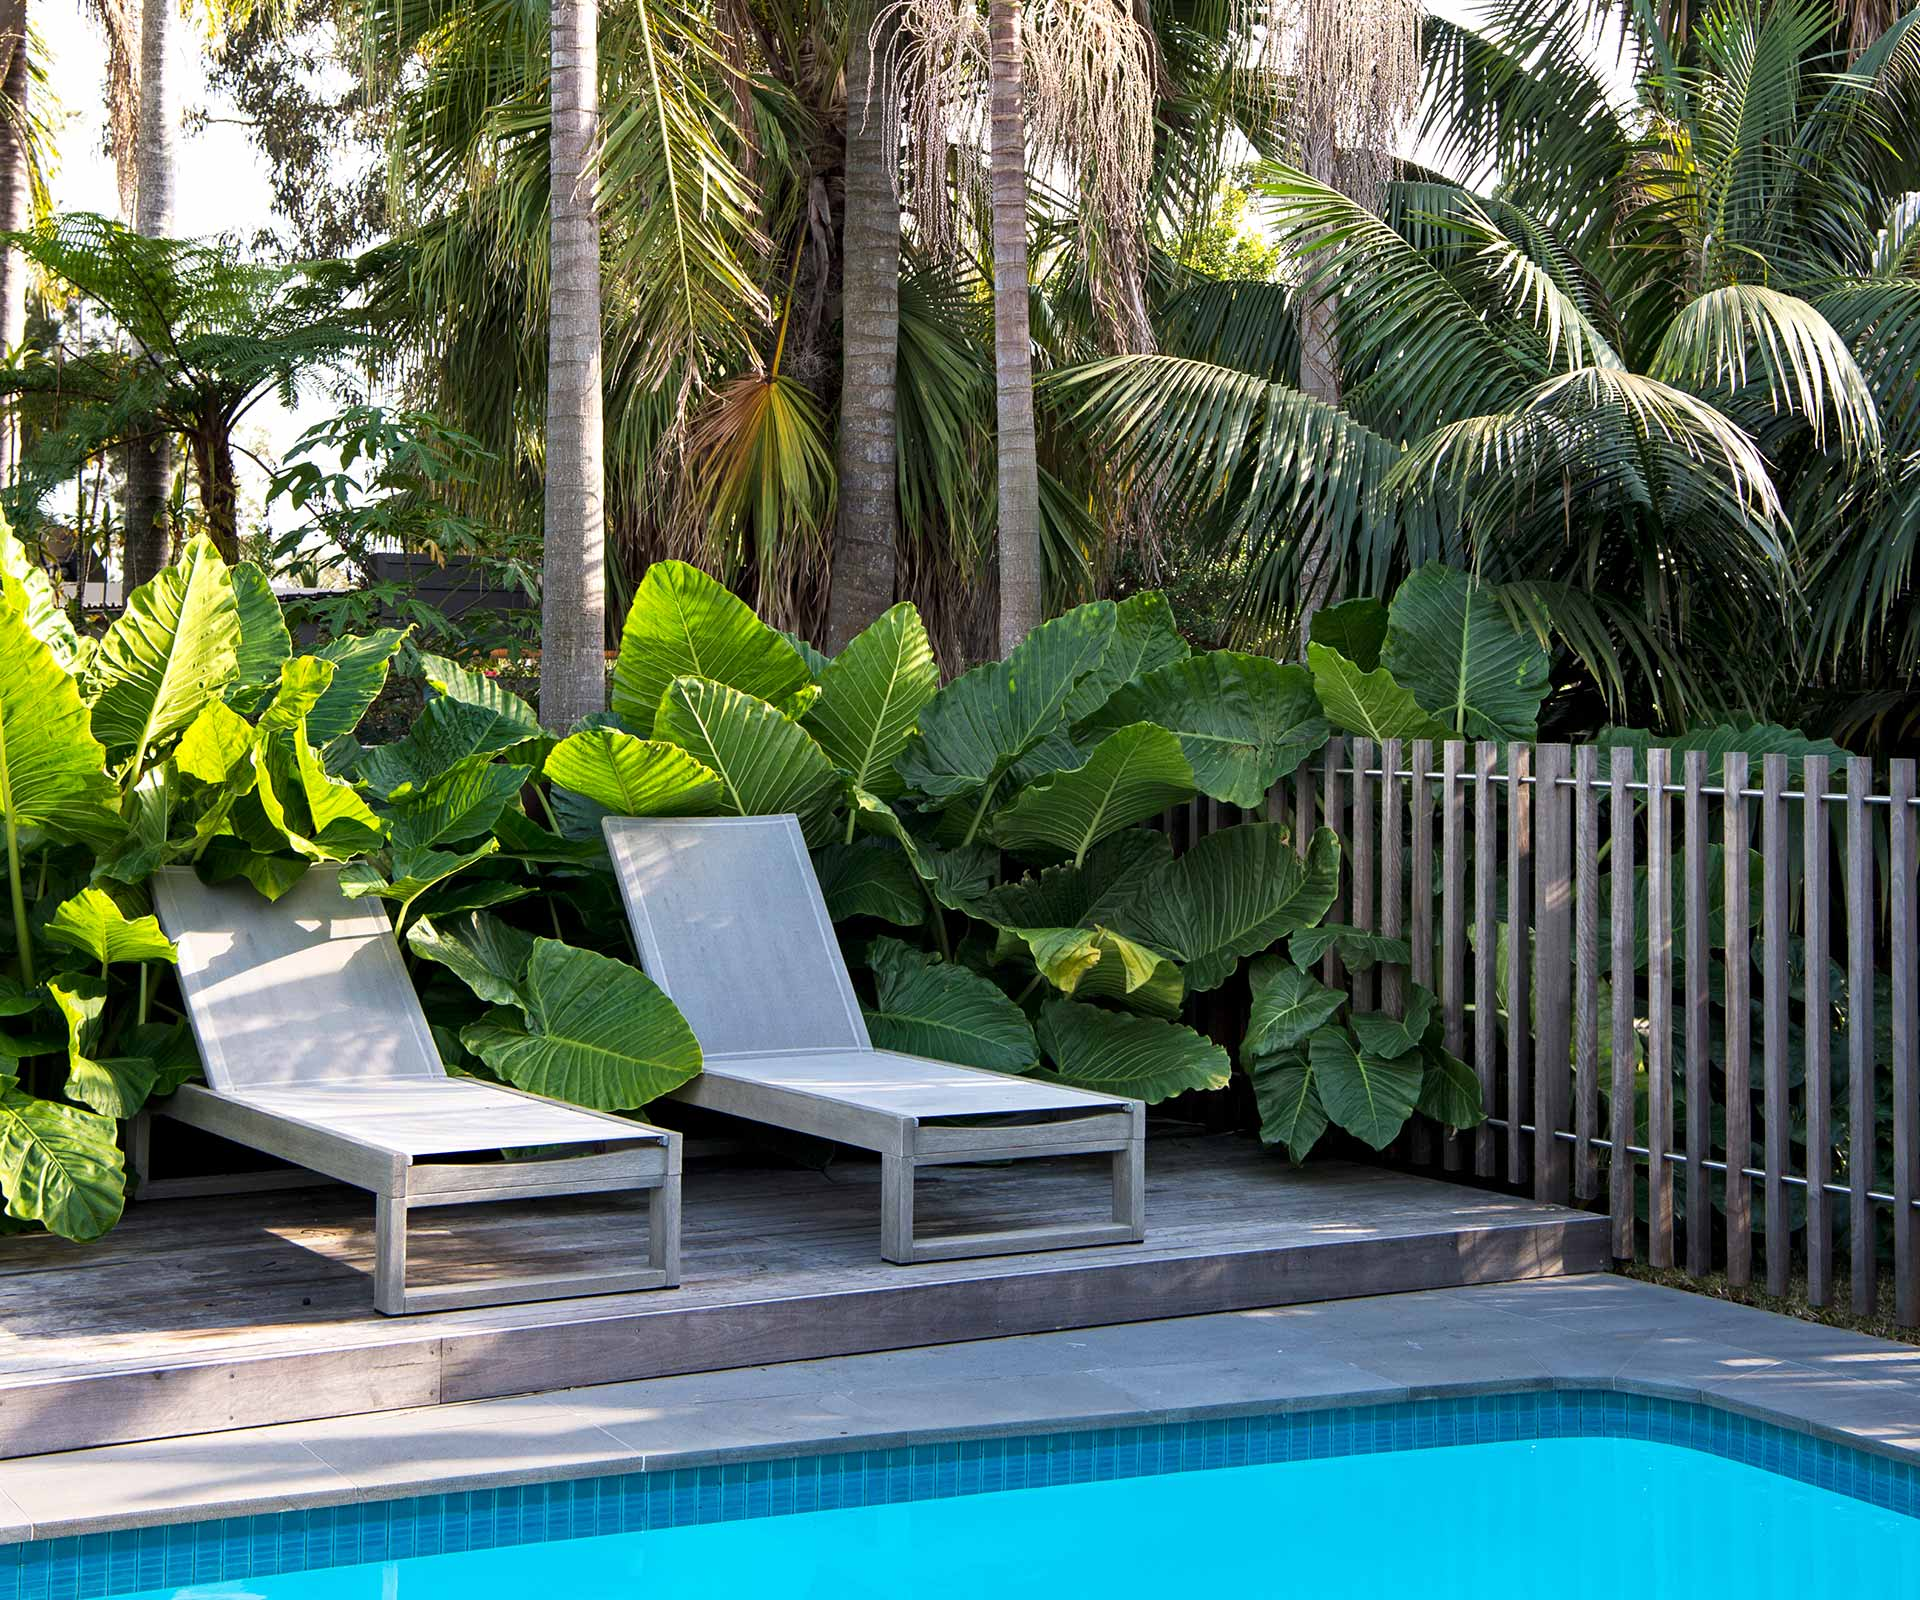 A Sydney backyard's relaxed resort-style makeover